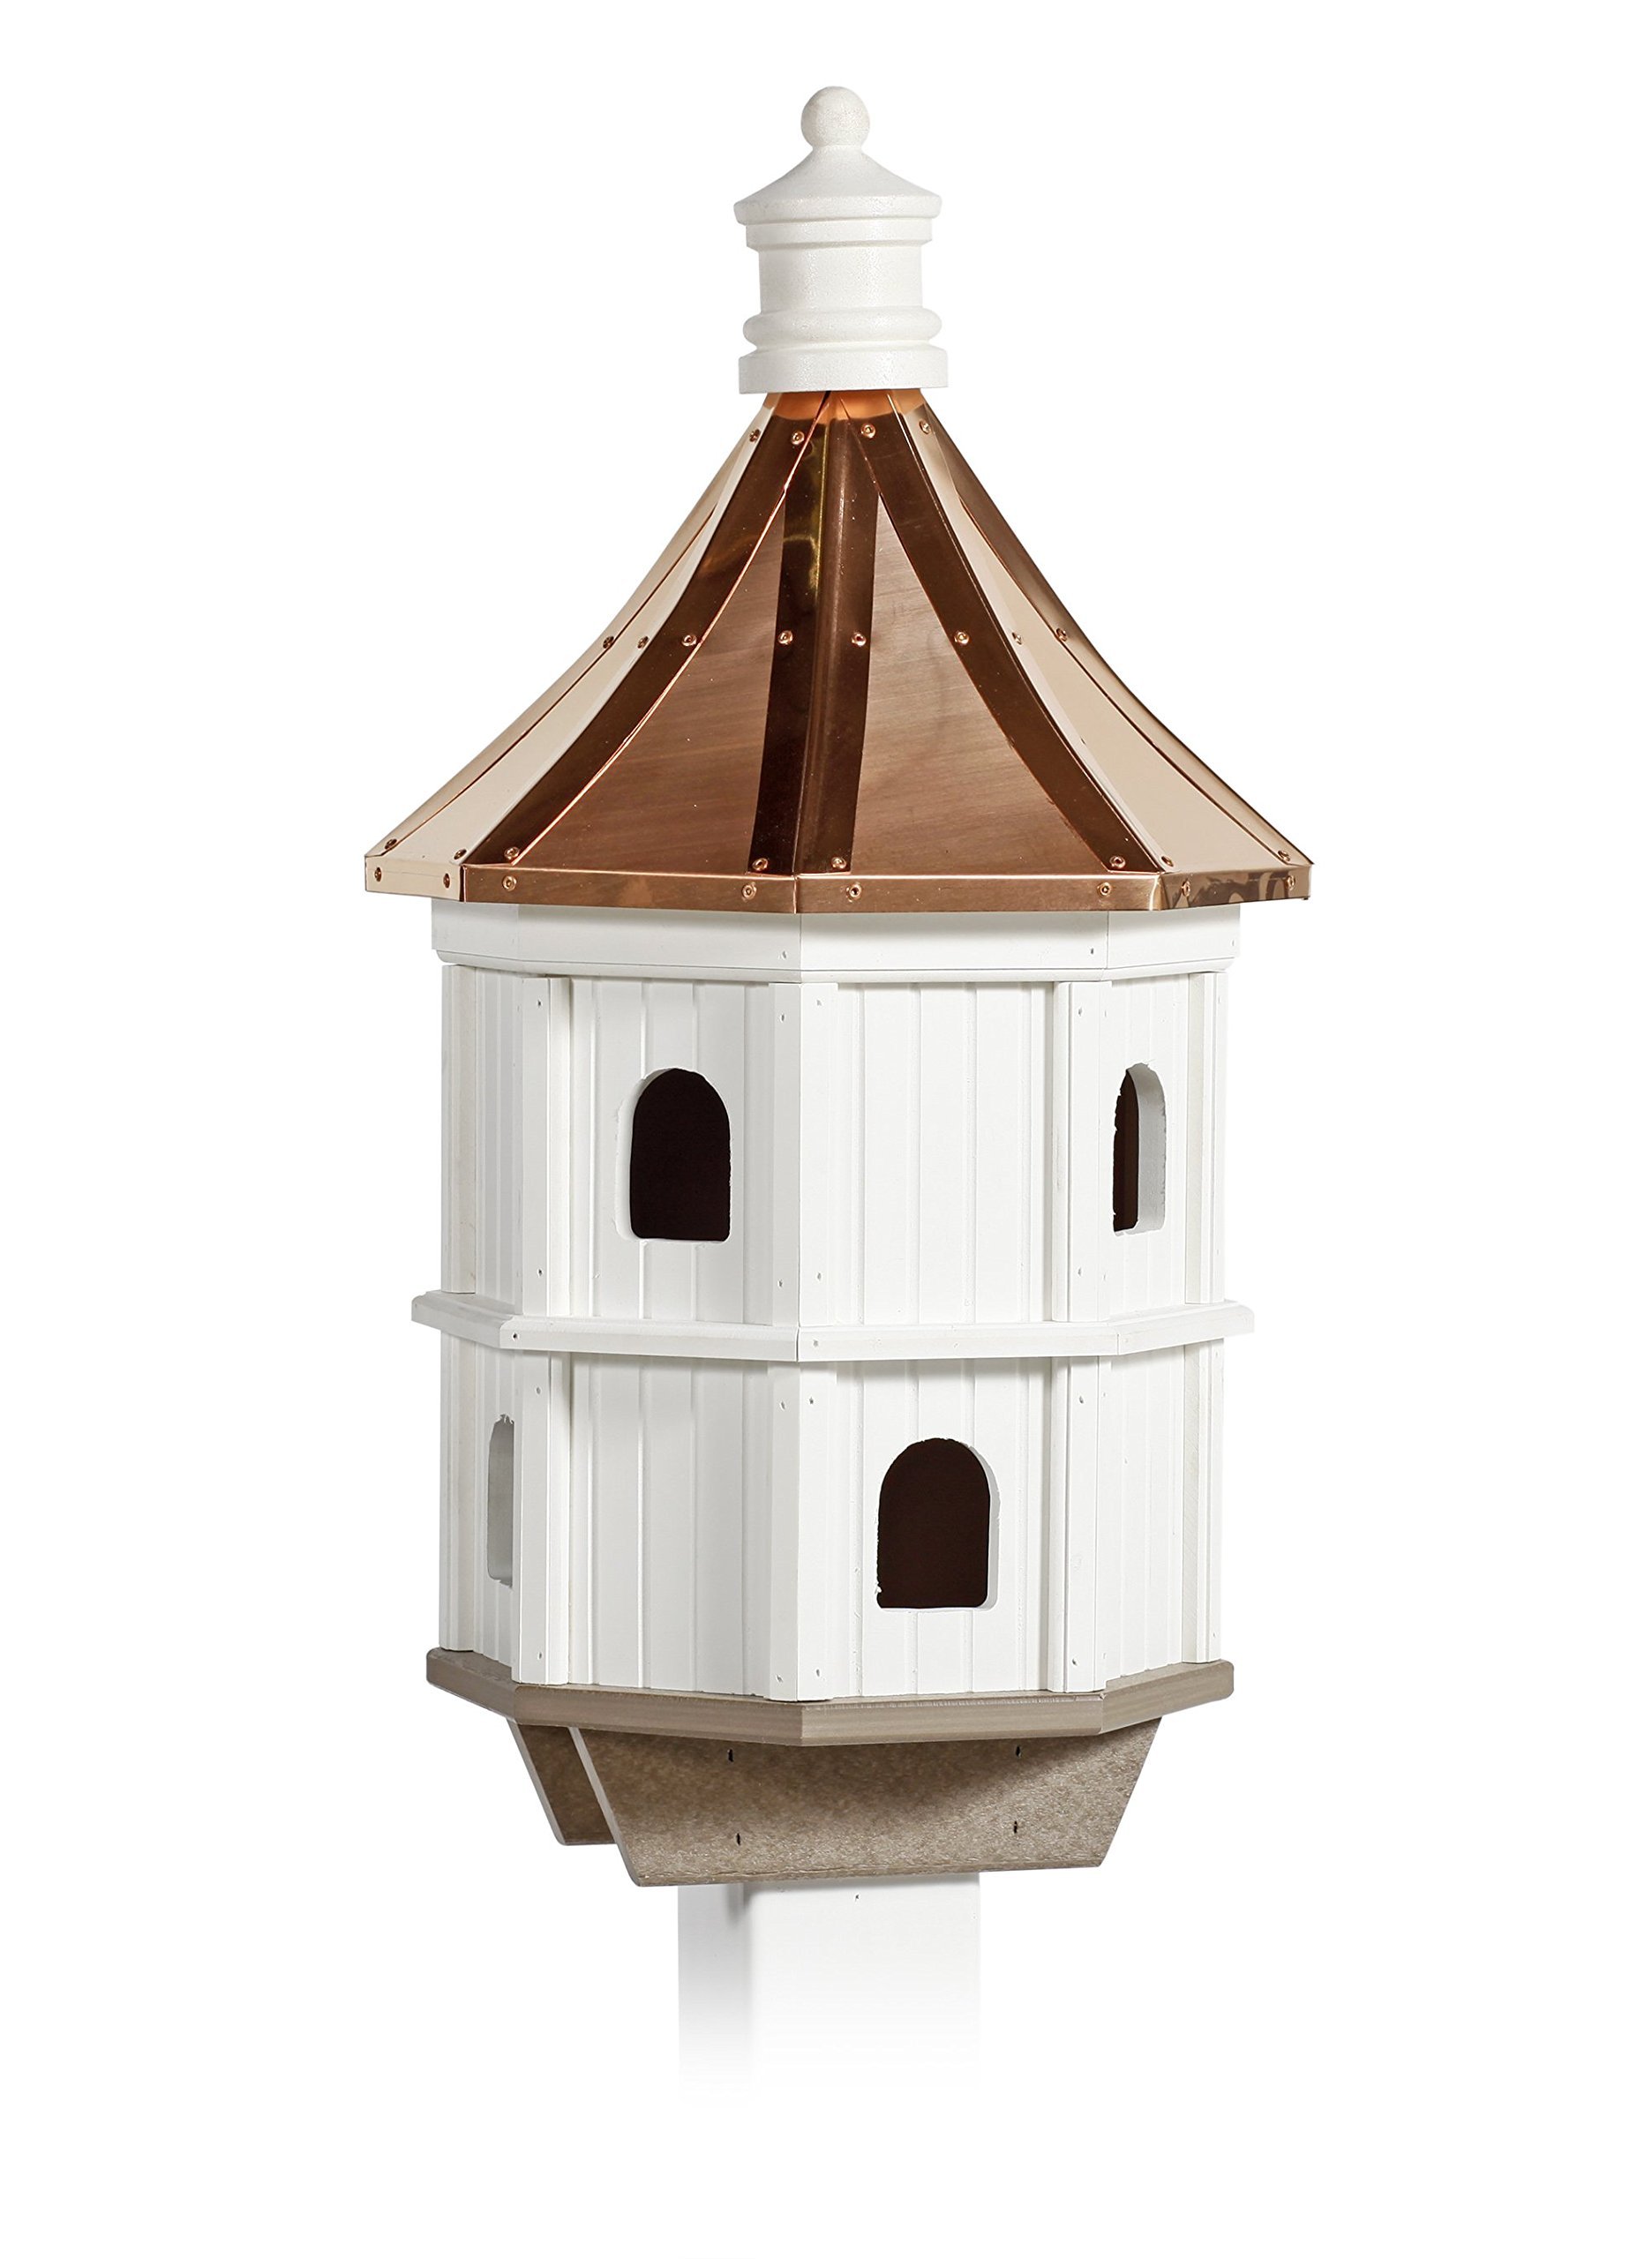 Condo Birdhouse with Copper Roof Amish Made in USA